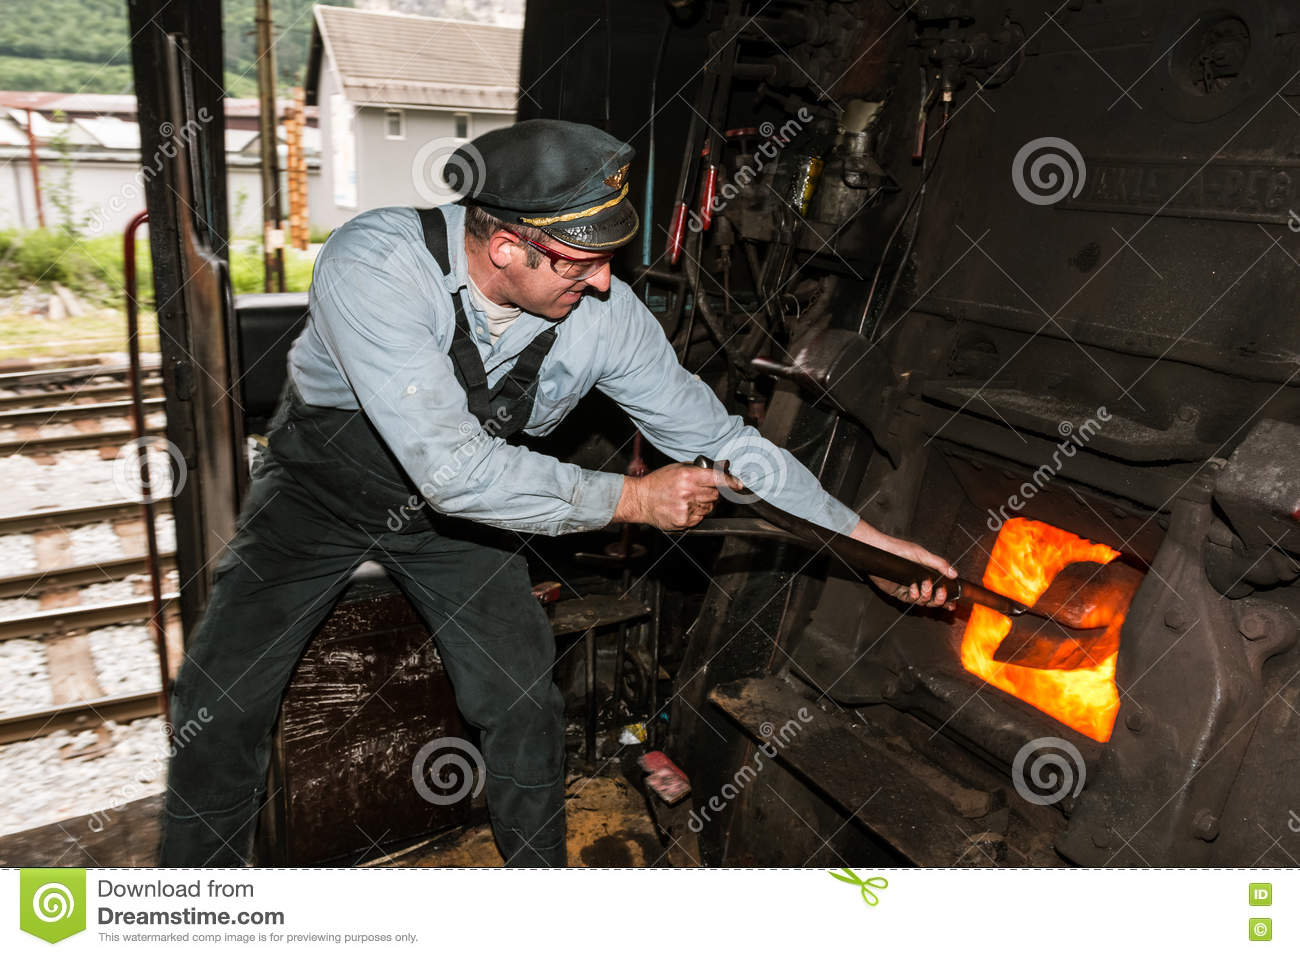 Sooty Stoker Shoveling Coal In The Furnace Of The Steam